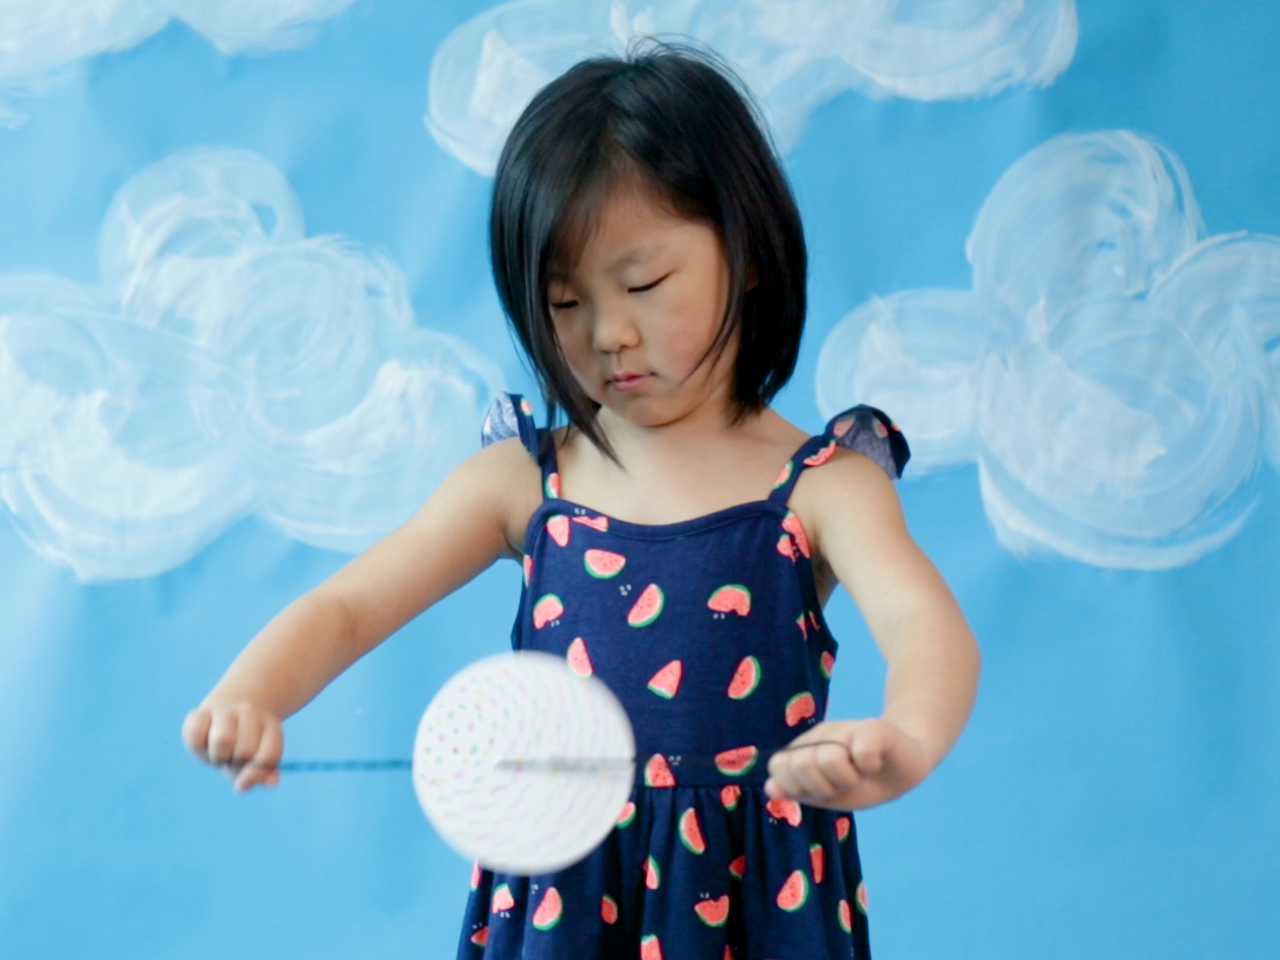 girl playing with fidget toy